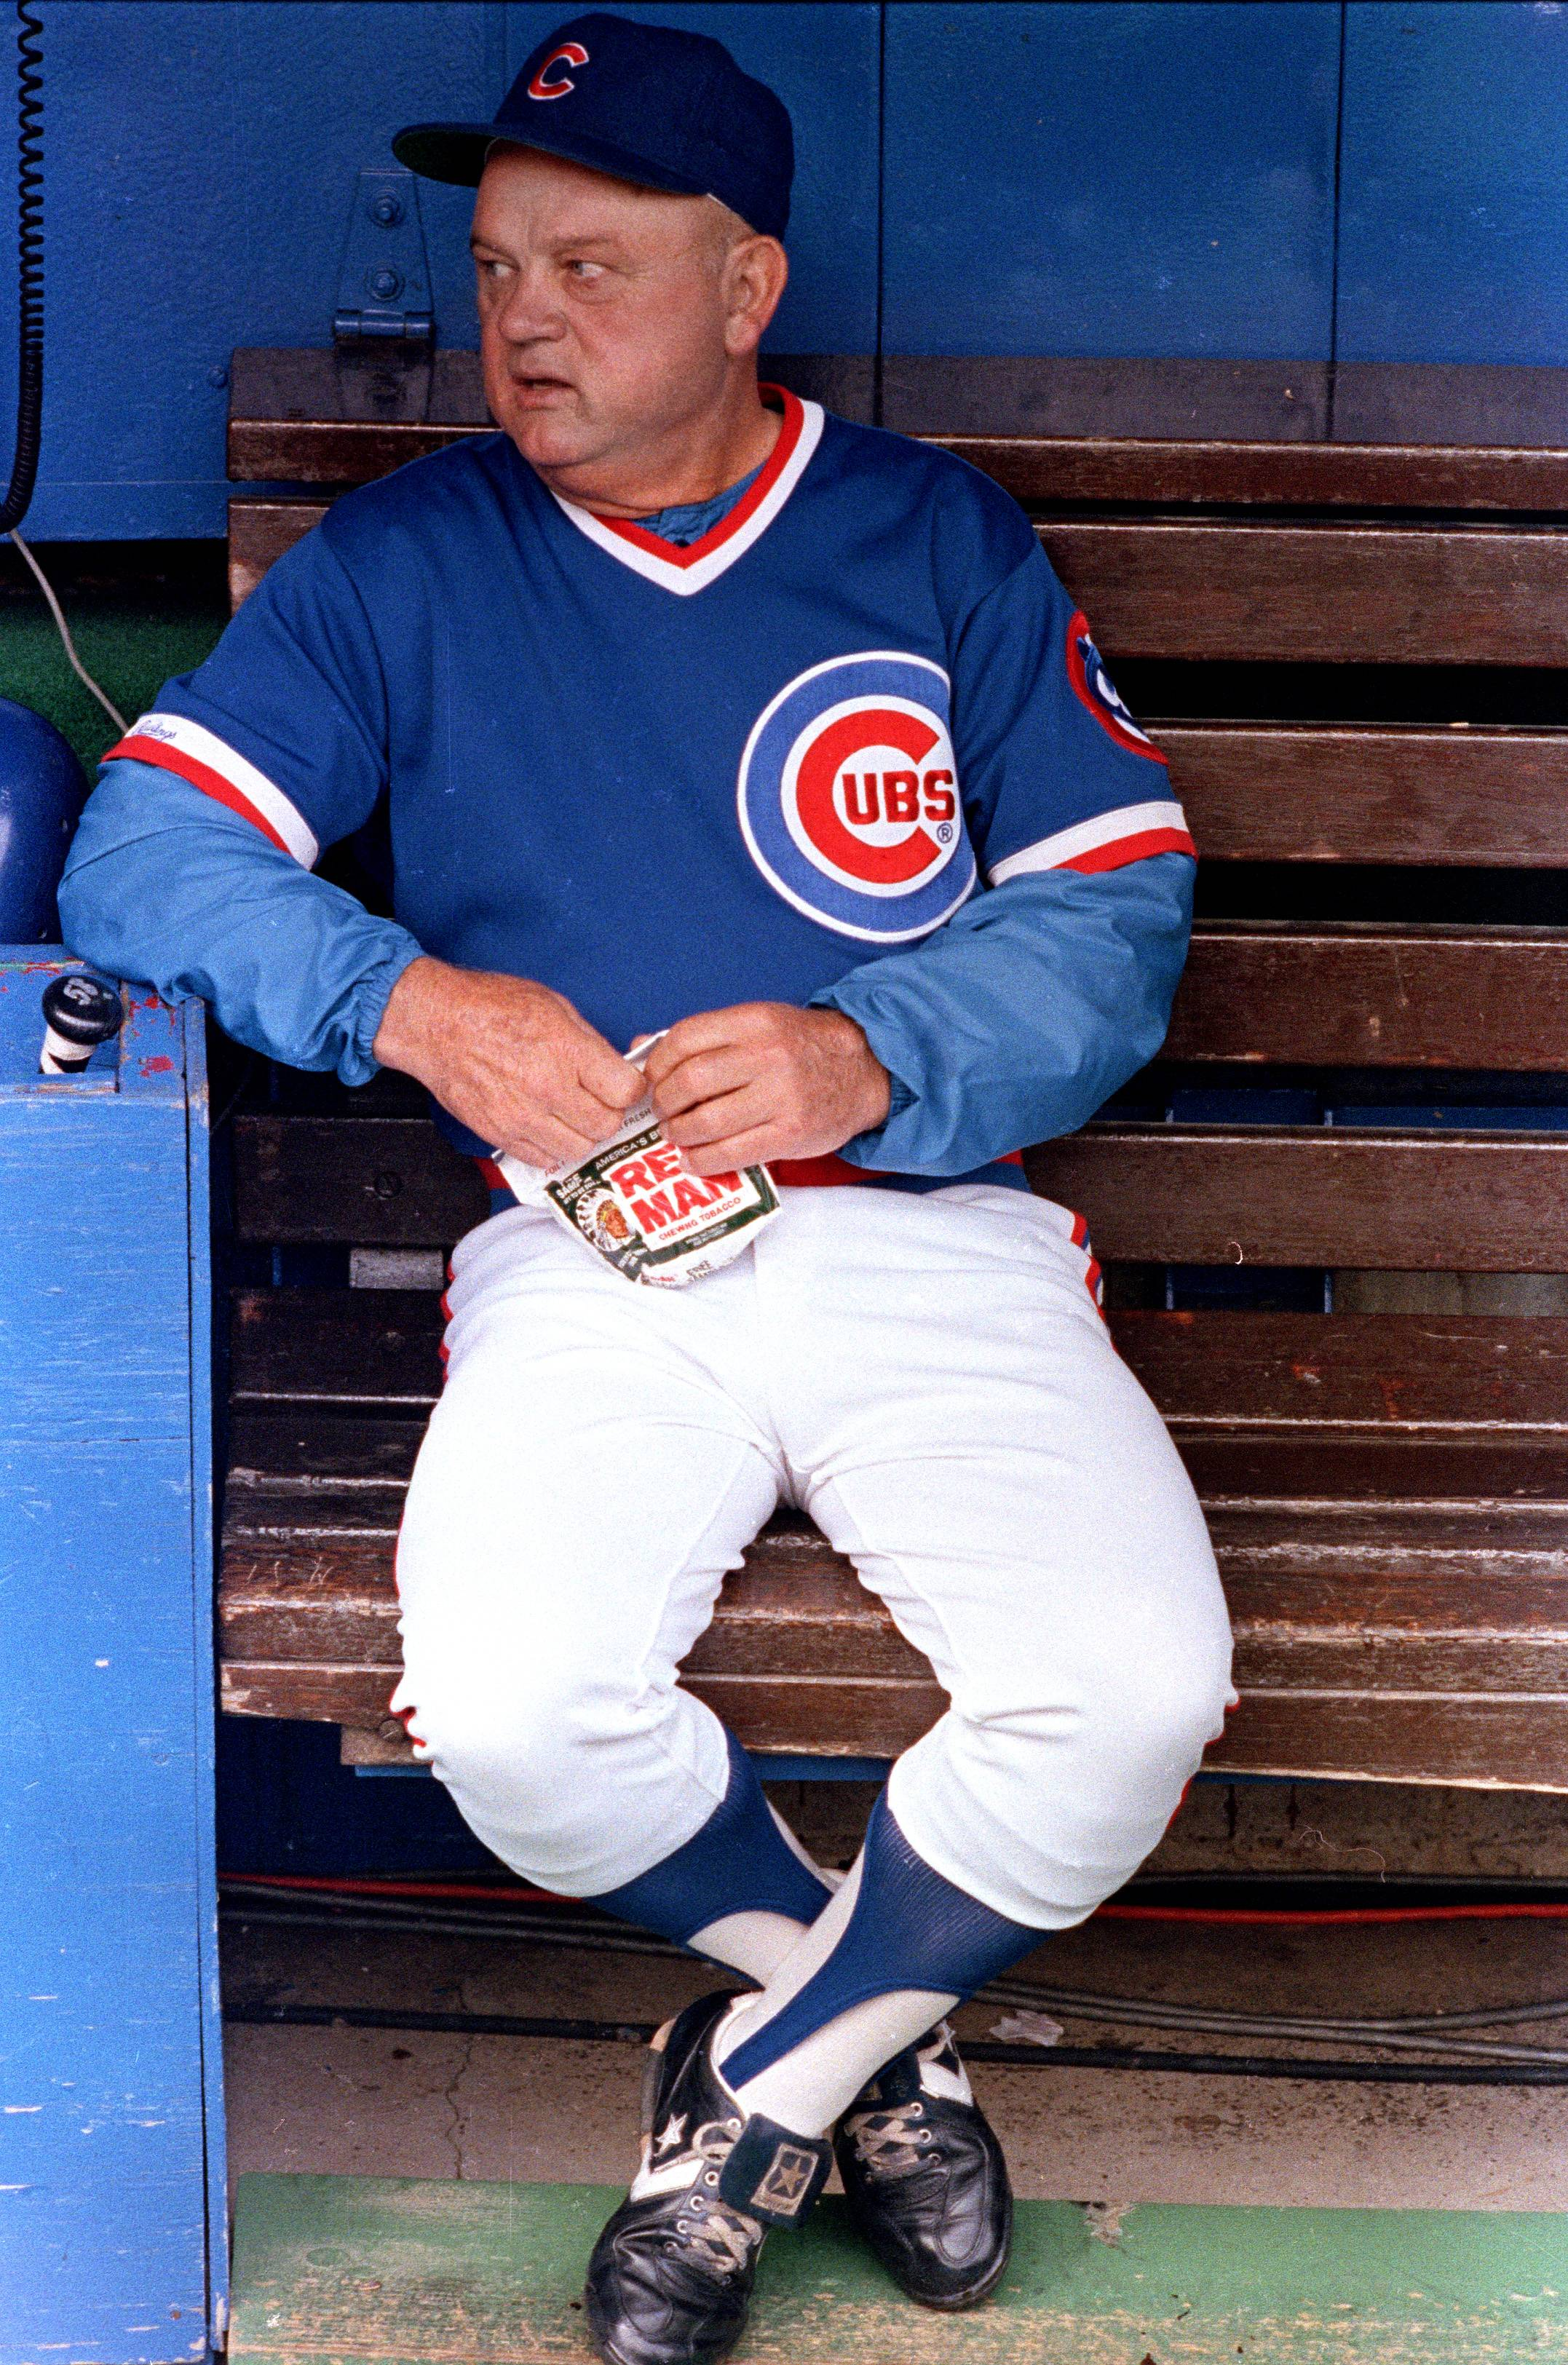 In this Sept. 30, 1989 file photo, Cubs manager Don Zimmer sits in the dugout before a game against the Cardinals in St. Louis. Zimmer, a popular fixture in professional baseball for 66 years as a manager, player, coach and executiv